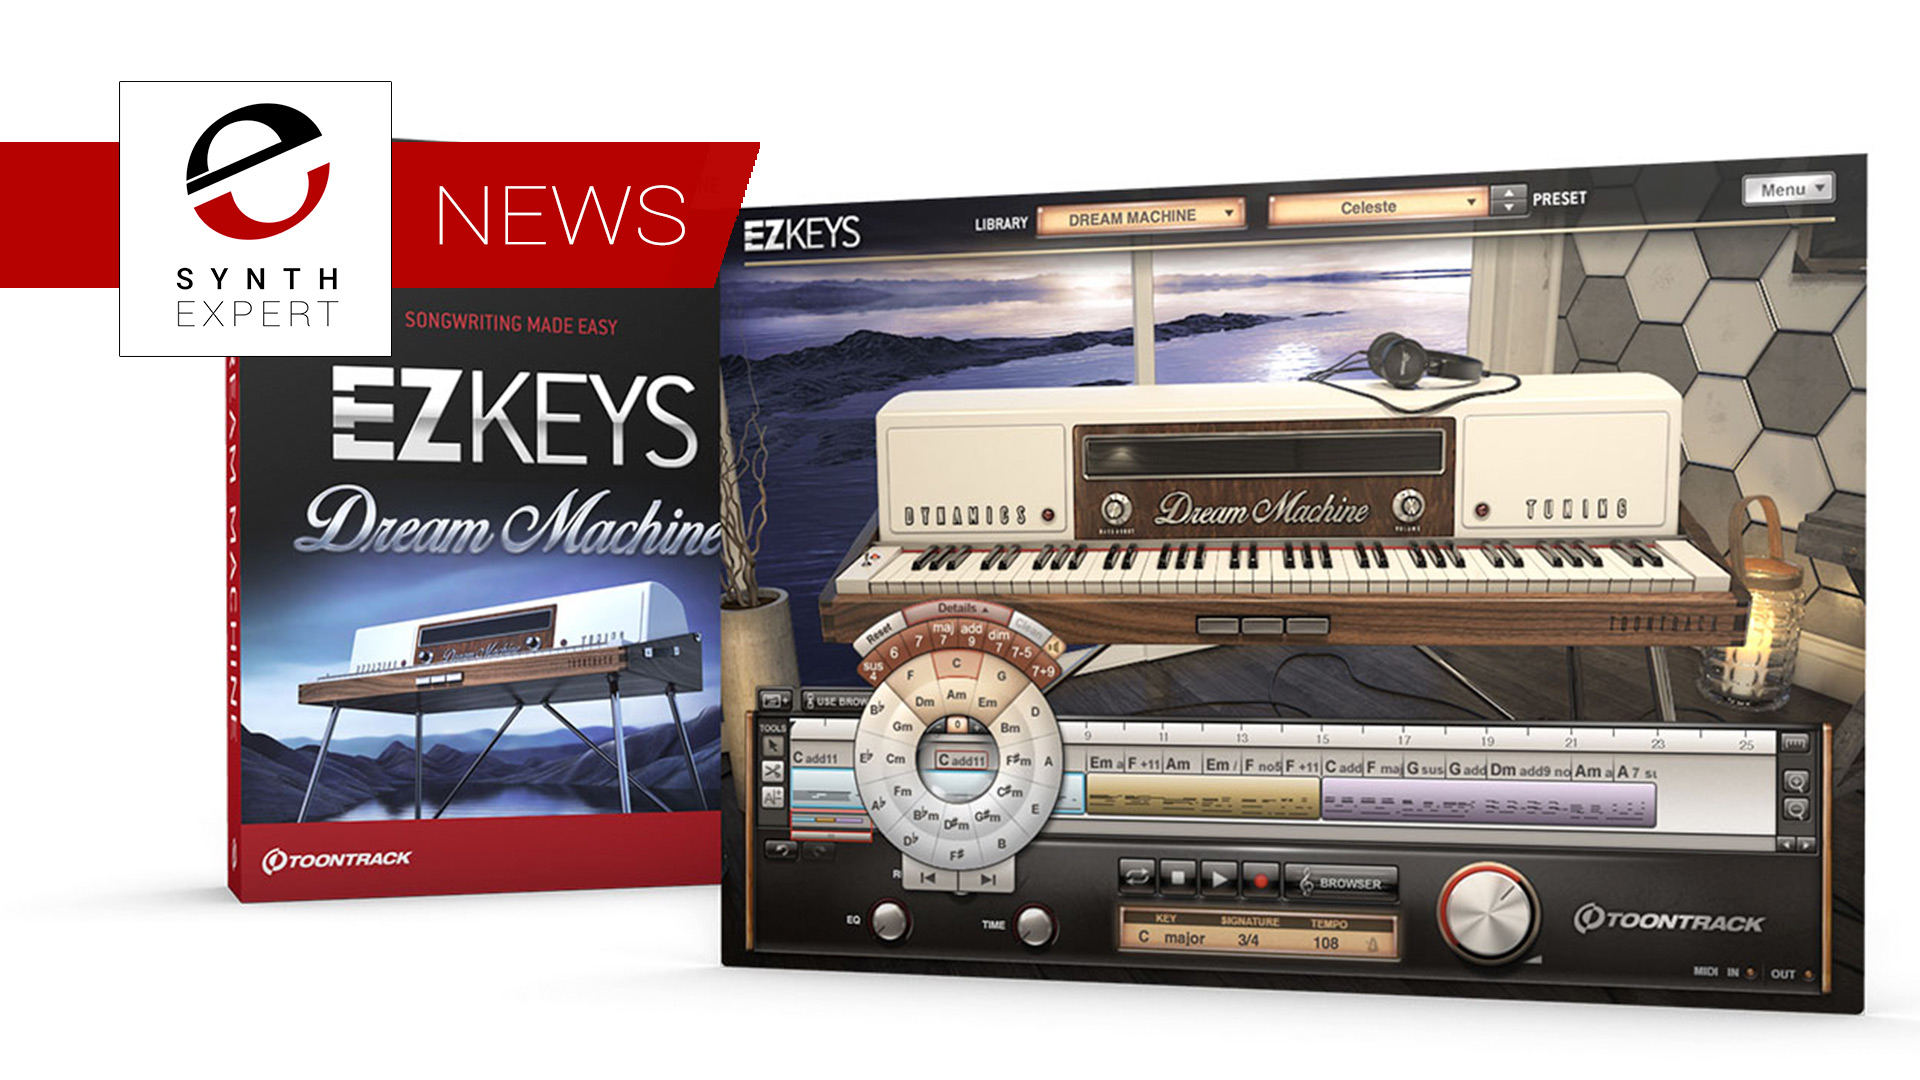 news-toontrack-release-dream-machine-ezkeys-keyboard-instrument.jpg